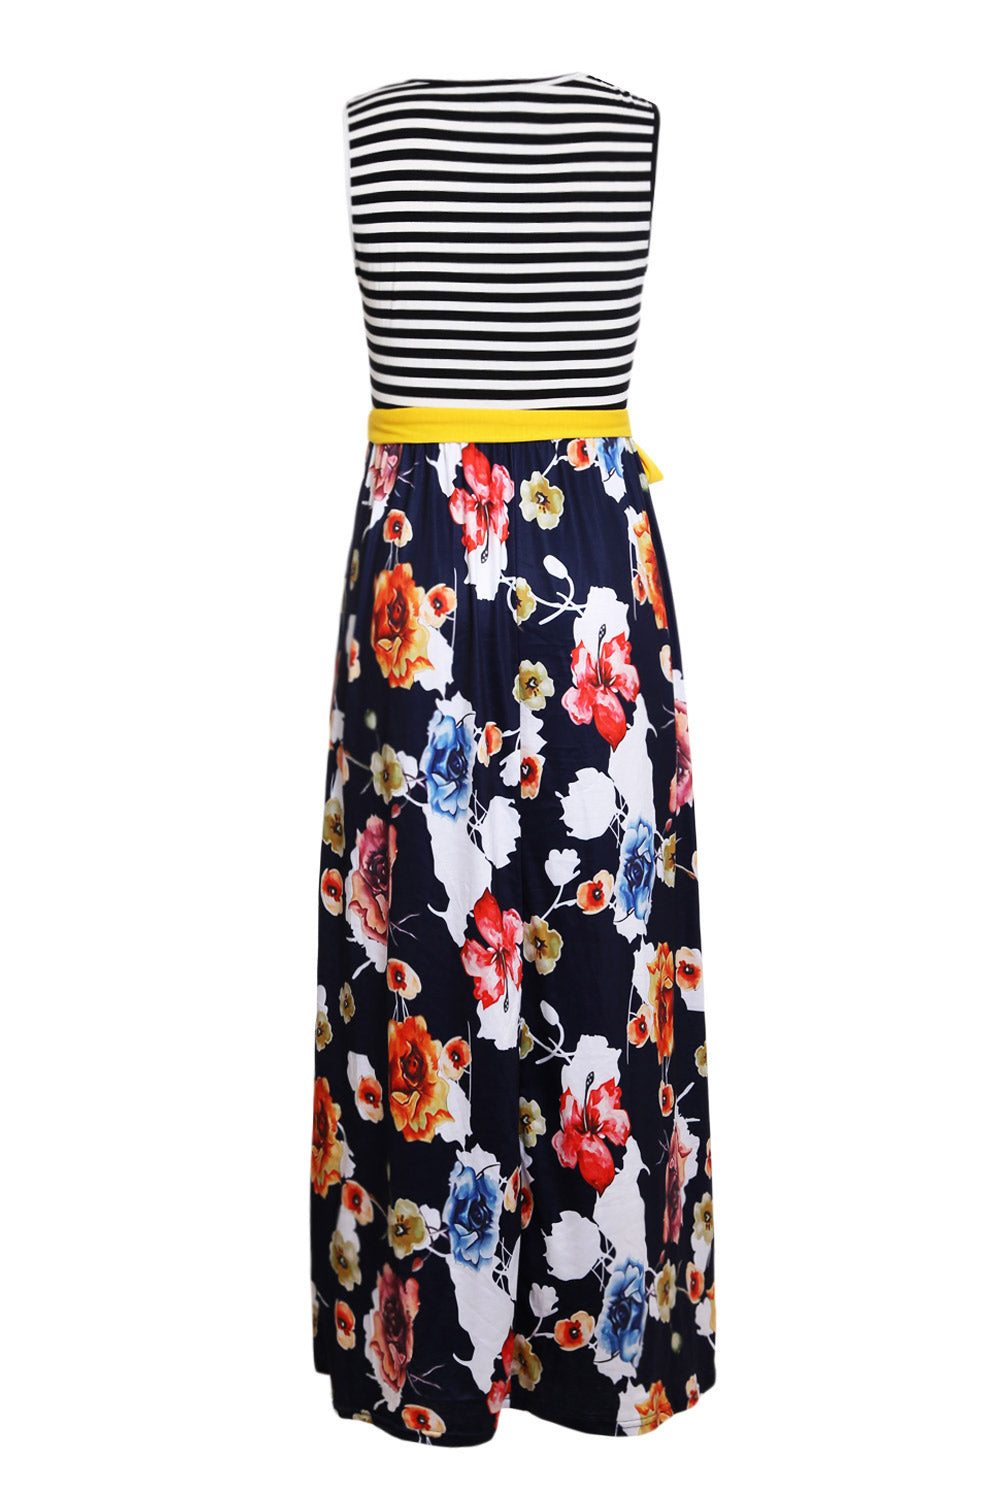 Navy Floral Scatter Striped Sleeveless Boho Dress